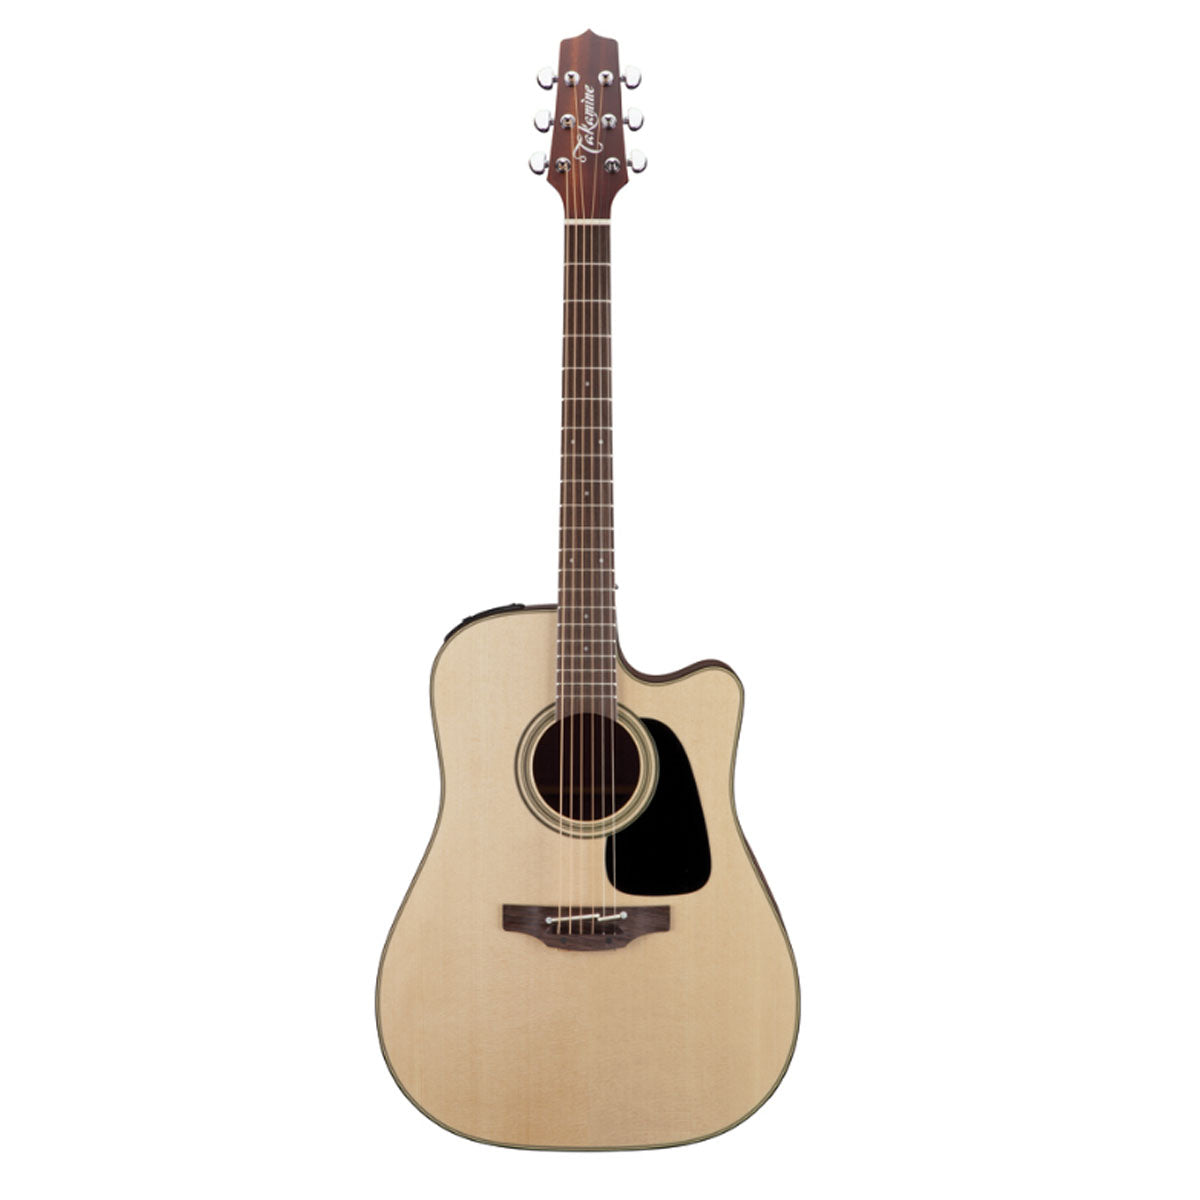 Takamine P2DC Pro Series 2 Acoustic Guitar Dreadnought Natural w/ Pickup